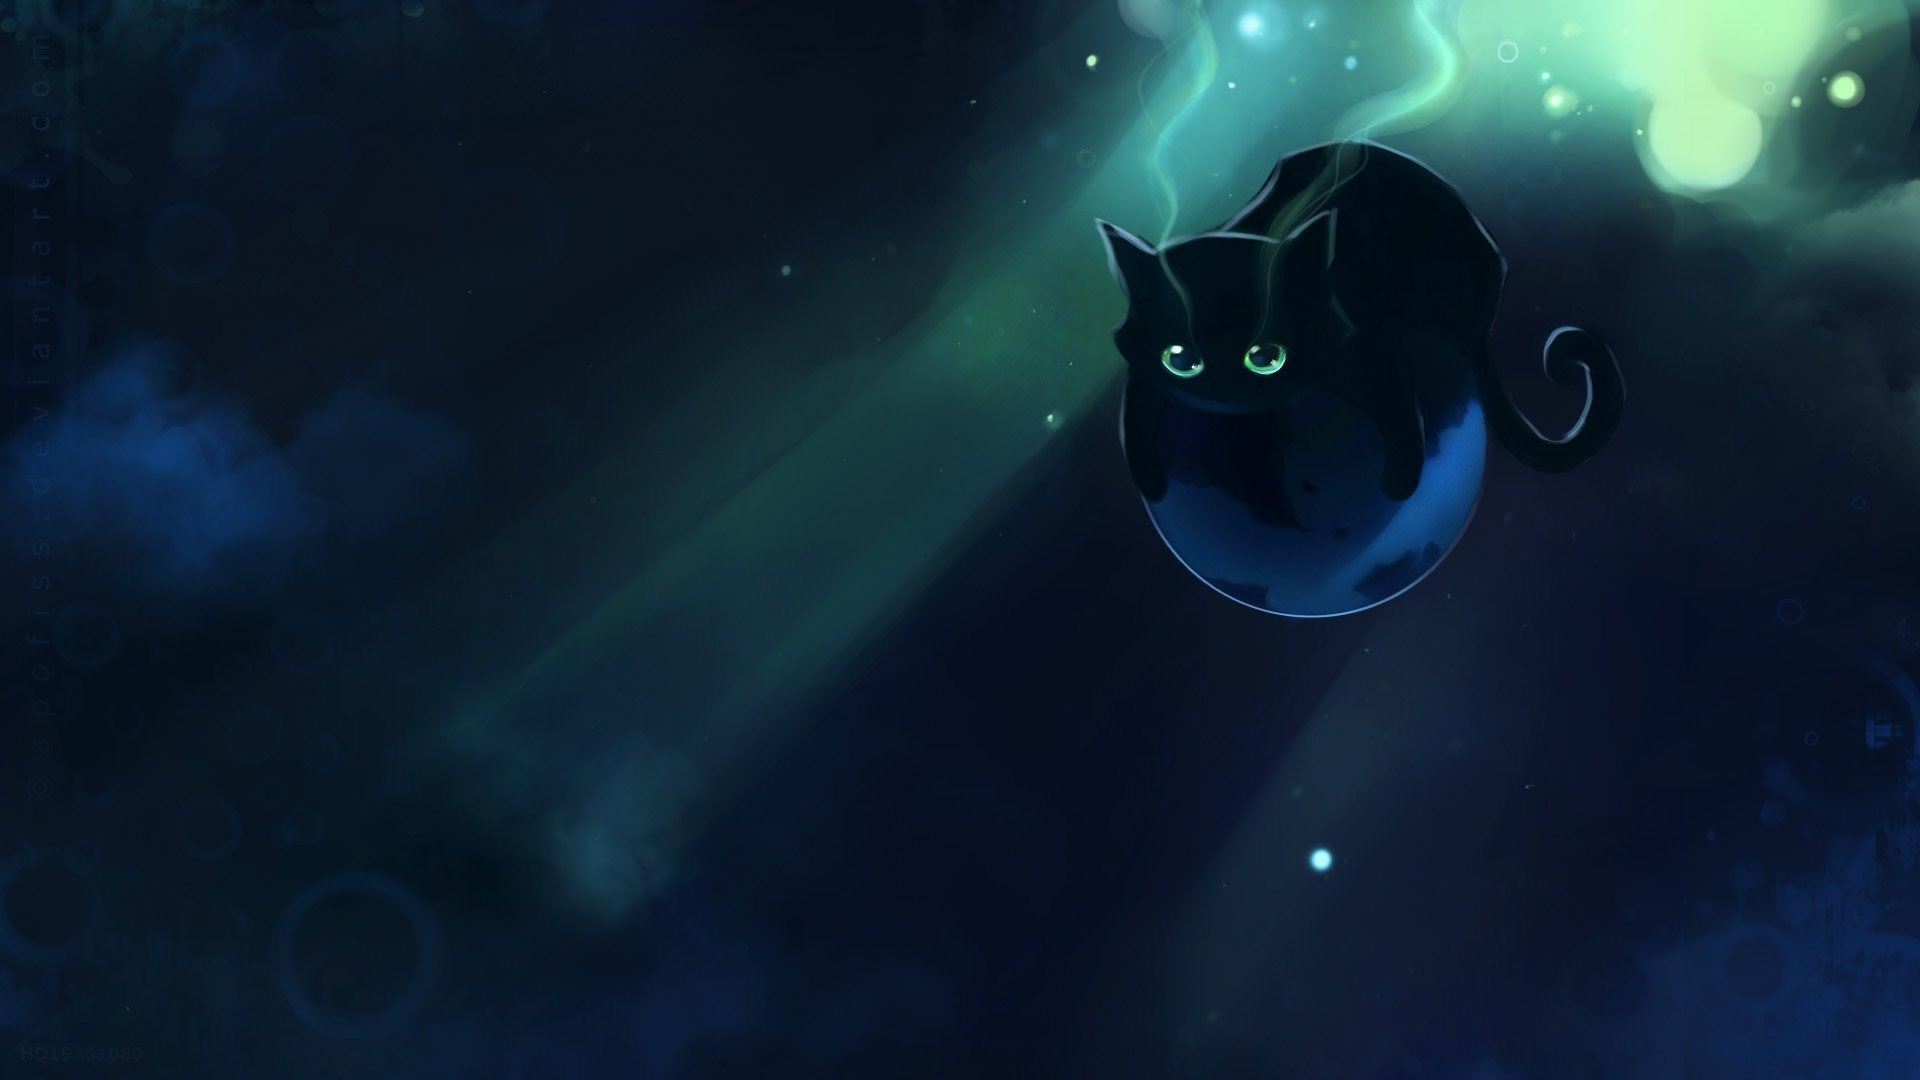 Apofiss-small-black-cat-watercolor-illustrations-1920x1080-wallpaper-wp3602642